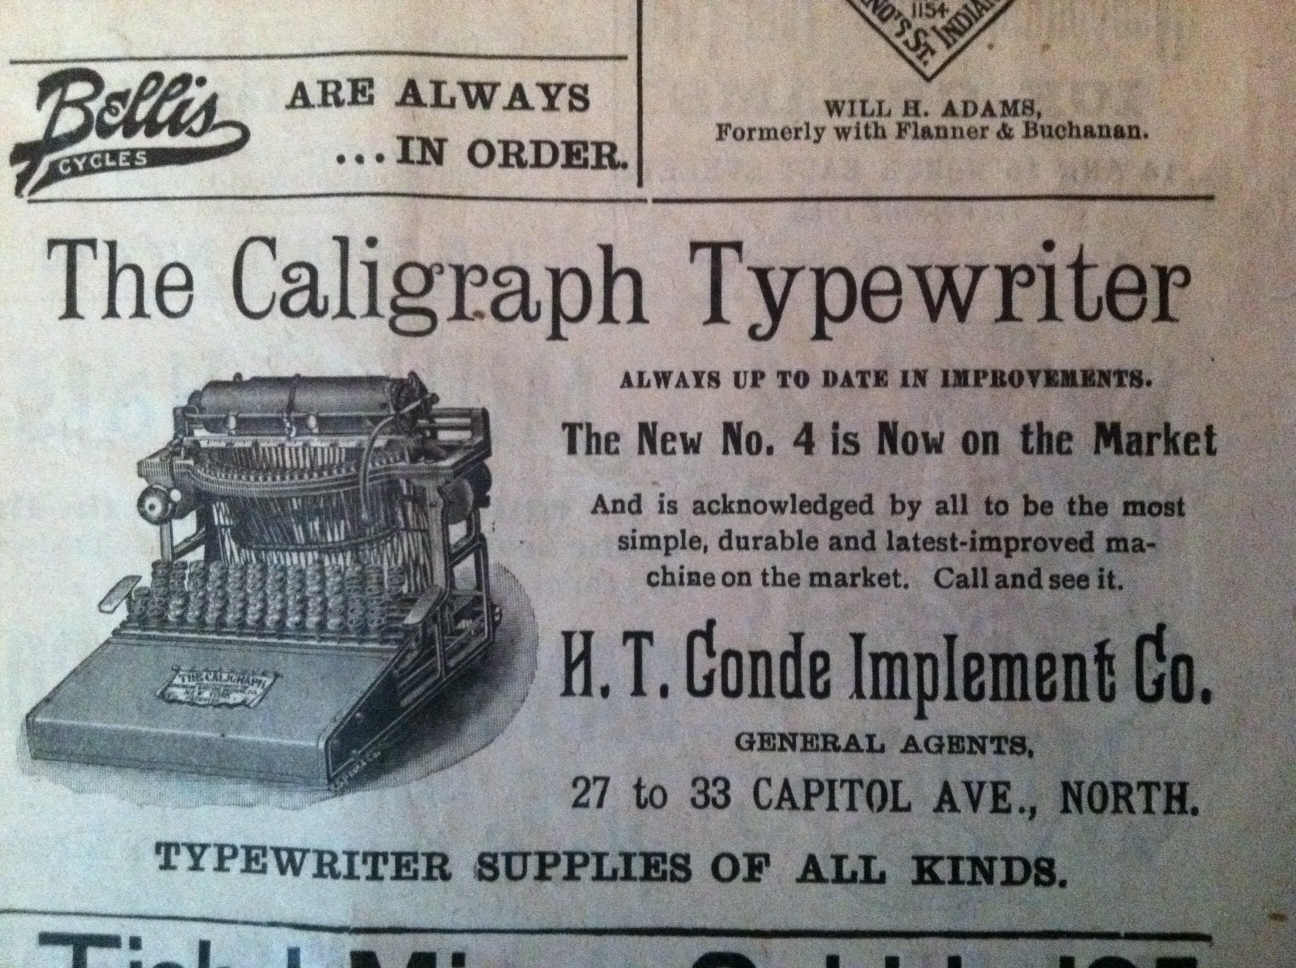 Sunday Adverts: Caligraph Typewriter